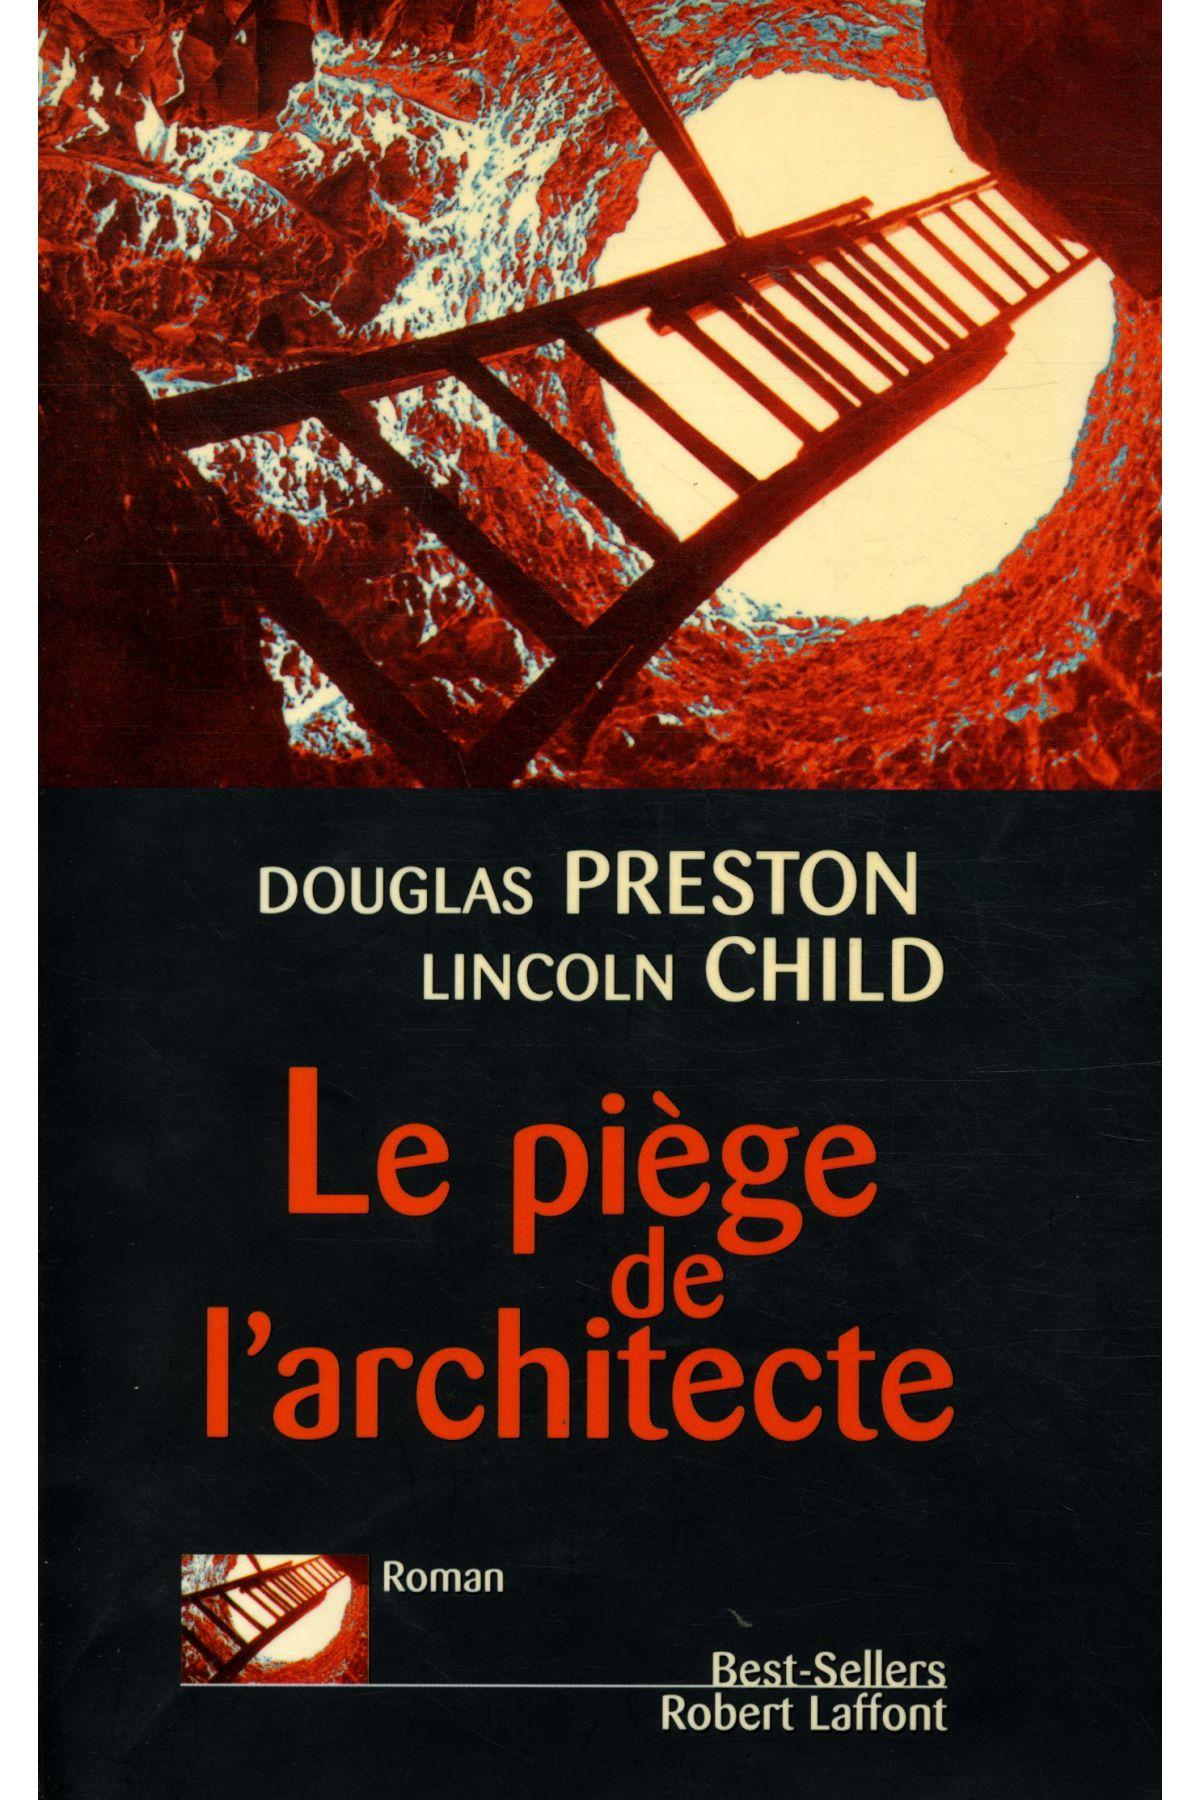 Le piège de l'architecte  - Douglas Preston  - Lincoln Child